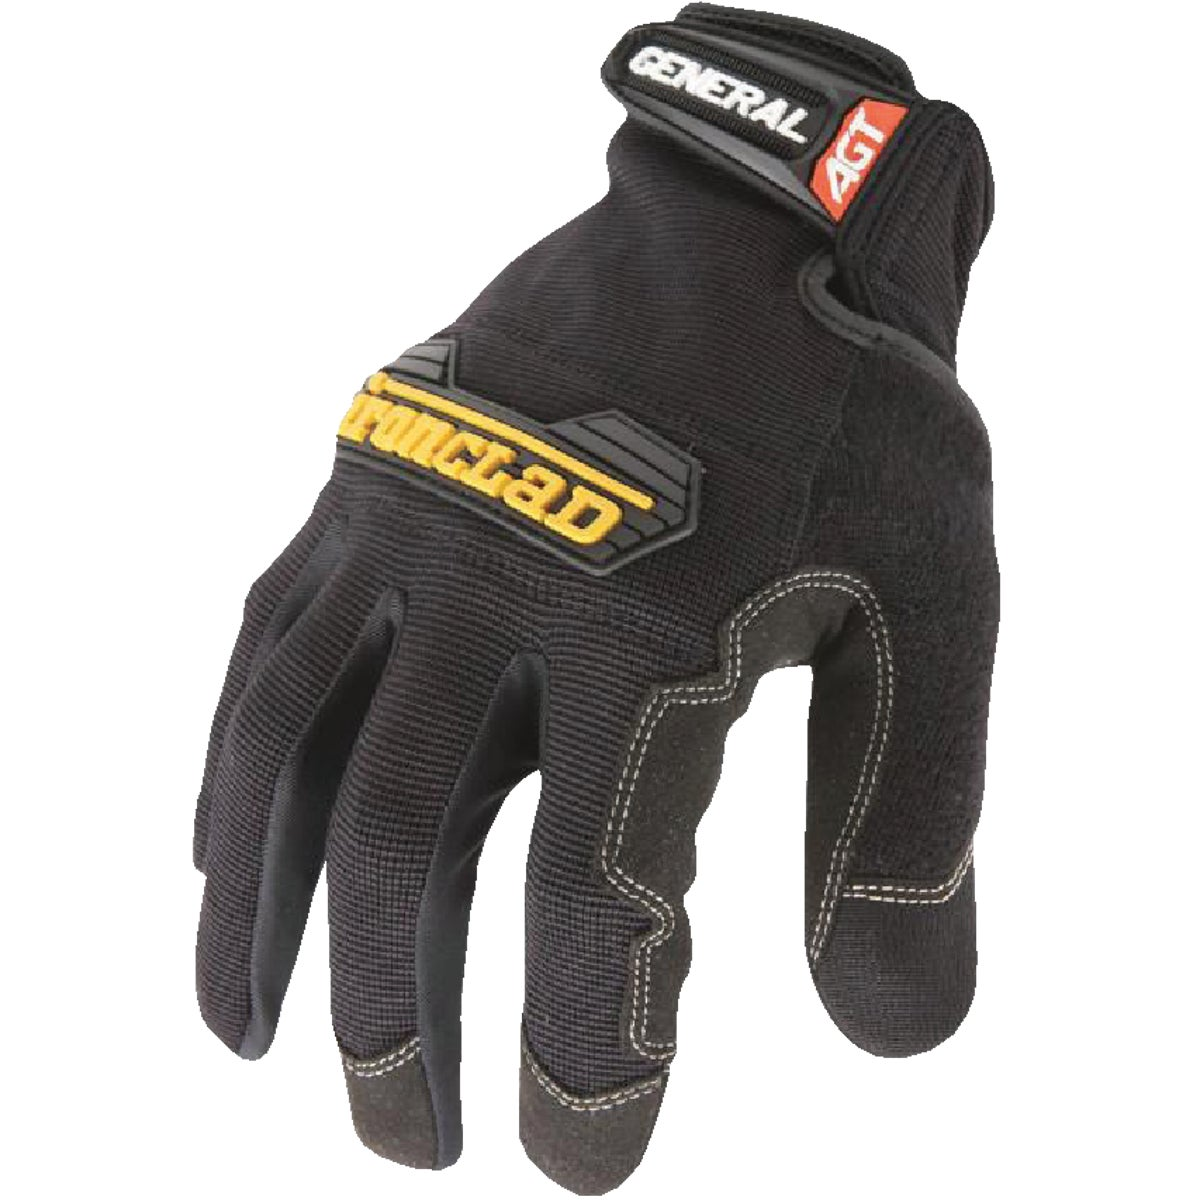 XL GEN UTILITY GLOVE - GUG-05-XL by Ironclad Performance